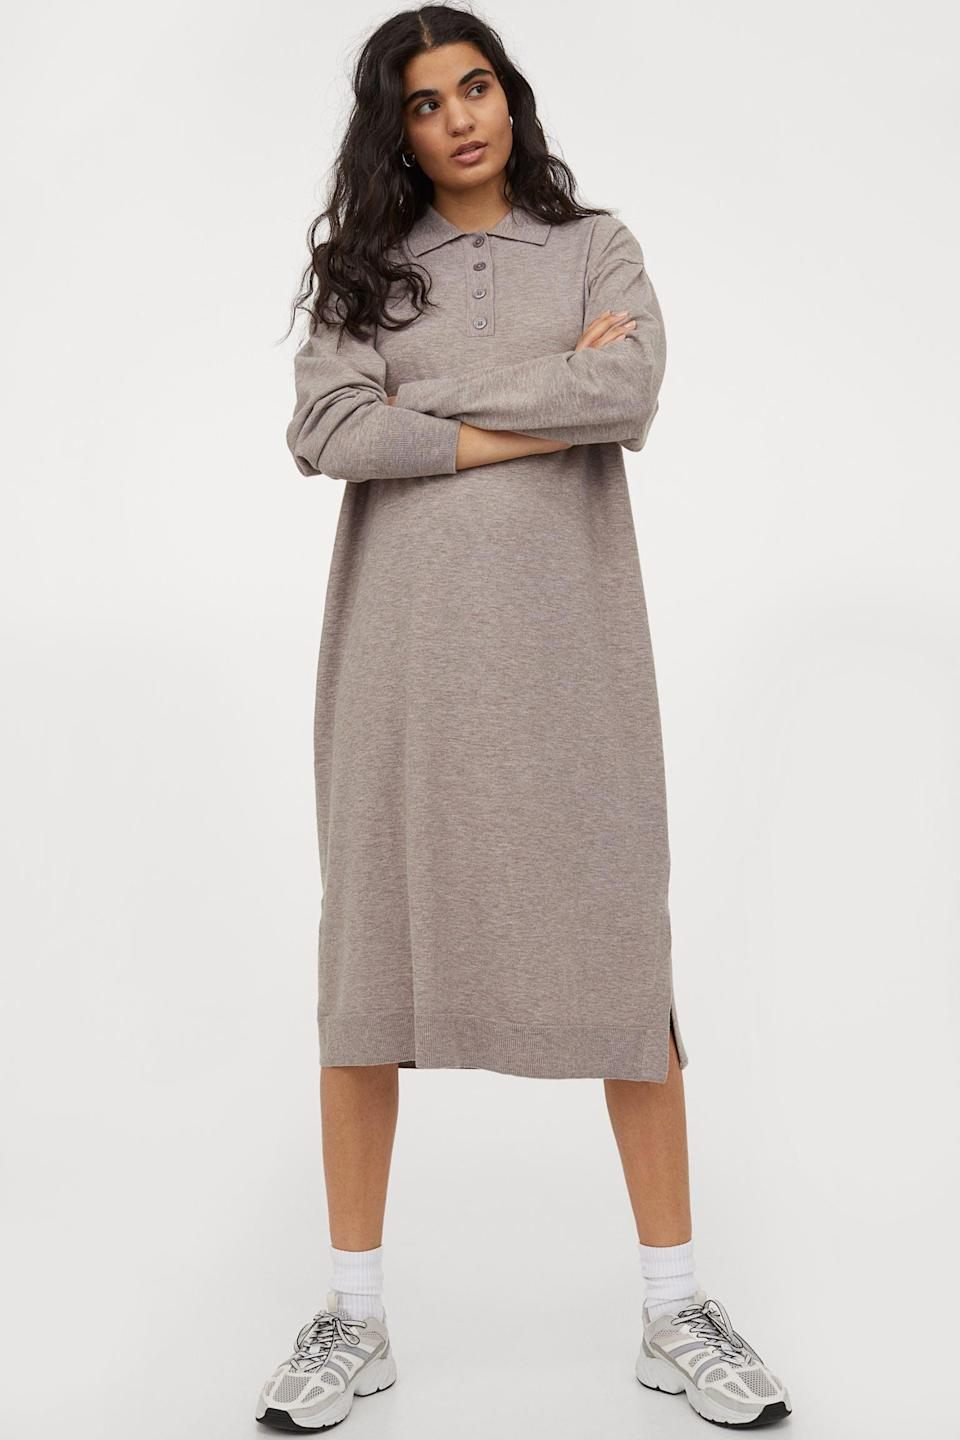 <p>Got some last-minute errands to run? The <span>H&amp;M Knit Collared Dress</span> ($30) has got you covered.</p>